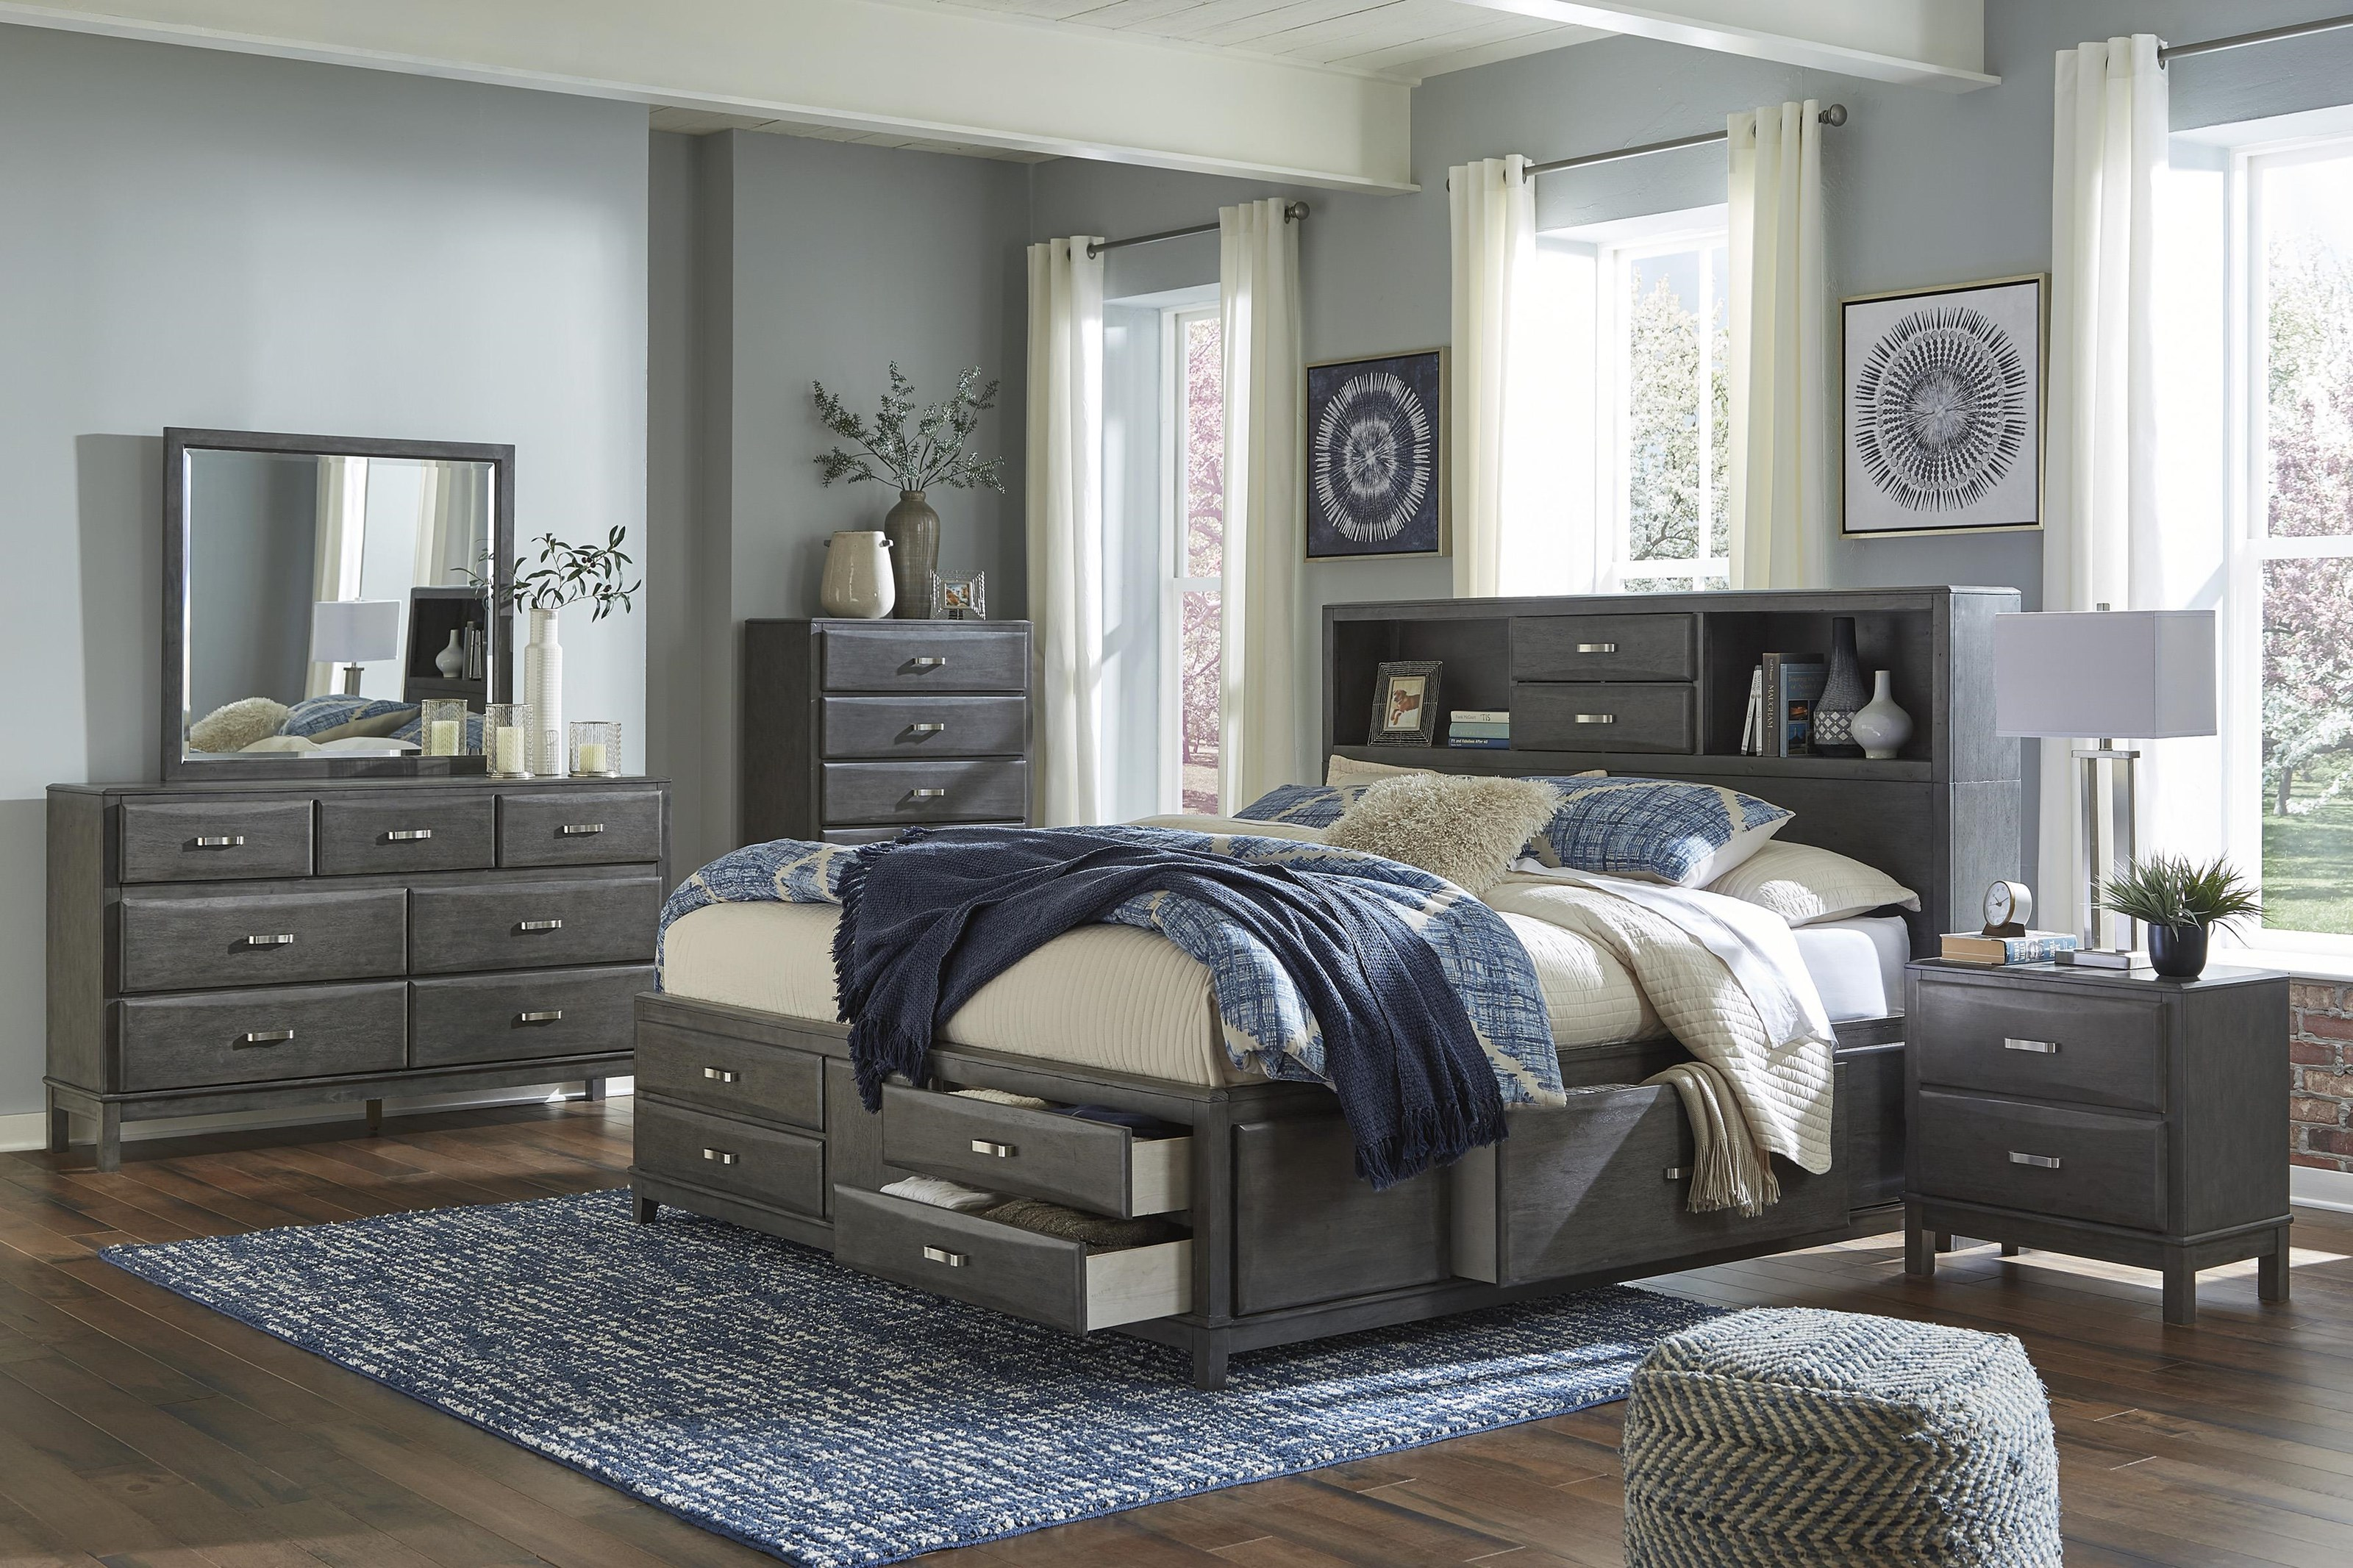 Caitbrook 5 Piece Queen Bedroom Group by Signature Design by Ashley at Value City Furniture